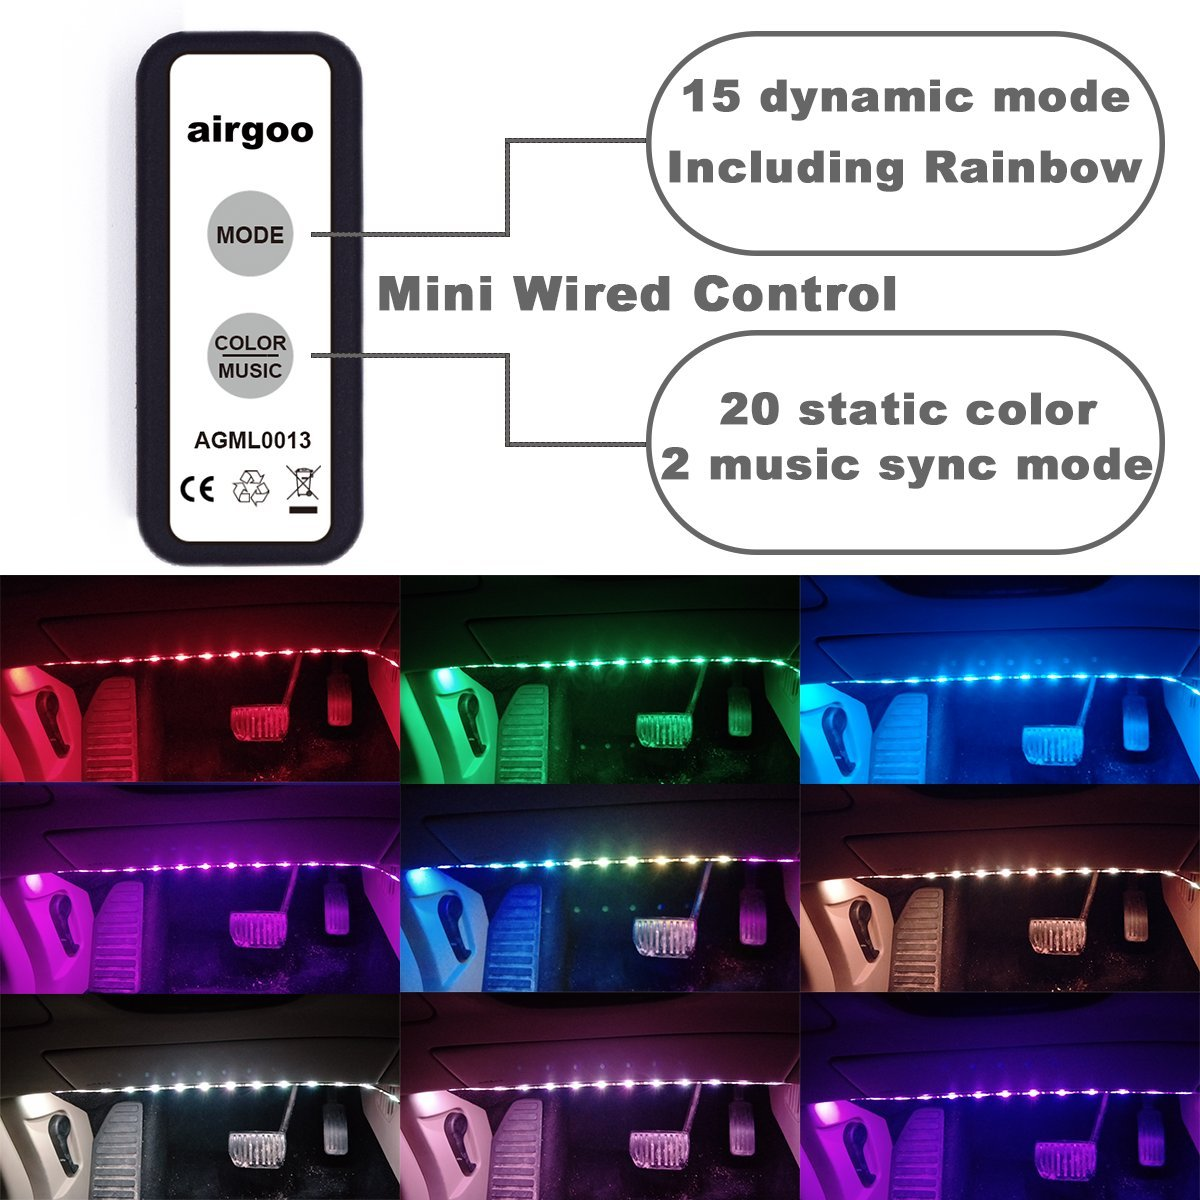 Airgoo Rainbow Car Led Strip Light Color Music Se Vacuum Wire Diagram Interior Lights Atmosphere Underdash Lighting Kit With Sound Active Function And Wired